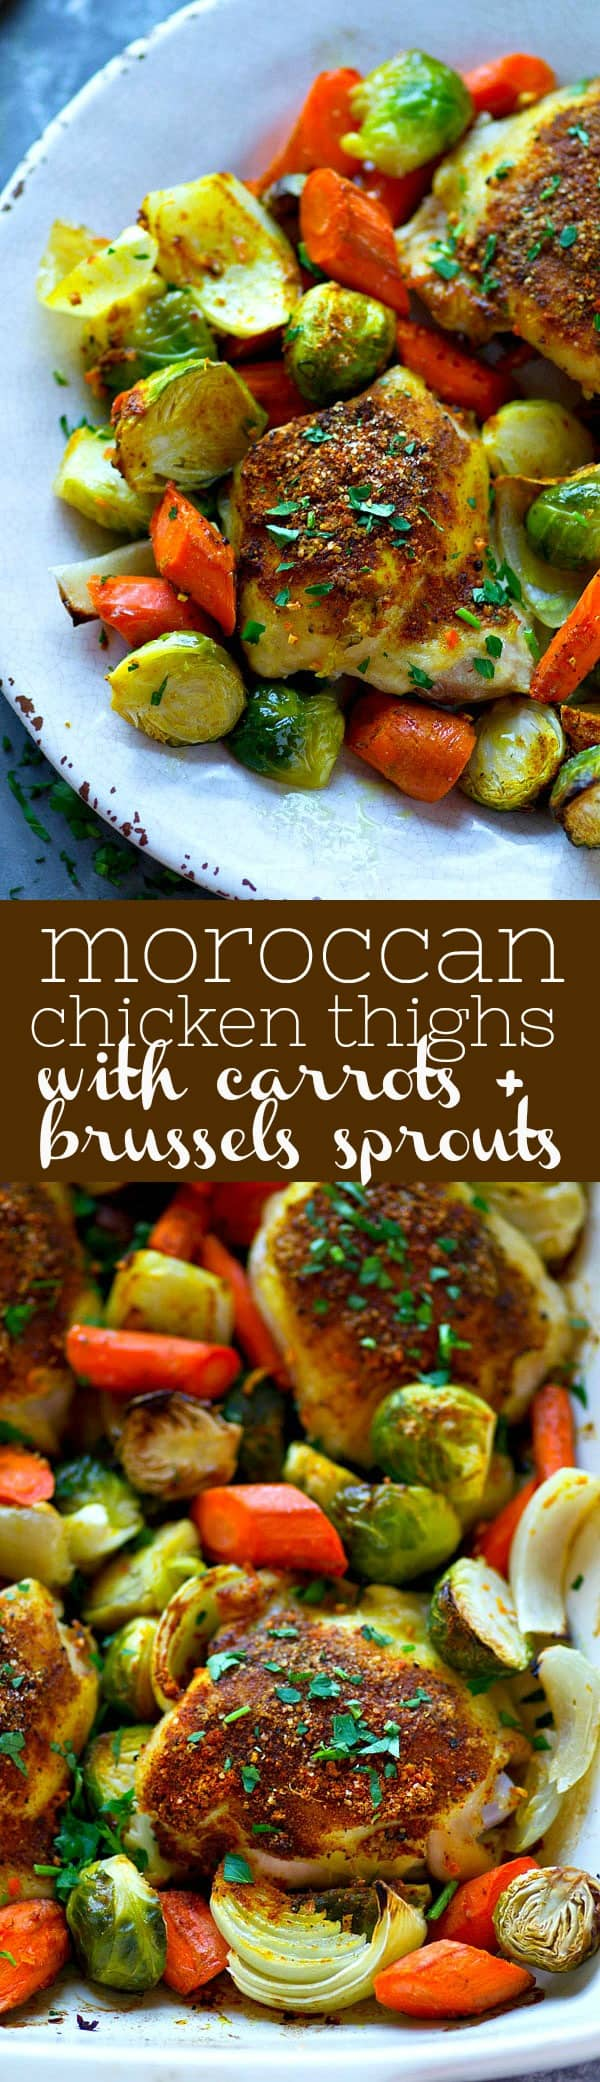 A flavorful Moroccan spice rub coats every inch of these juicy chicken thighs with tender roasted brussels sprouts and carrots.---the easiest and healthiest one sheet-pan dinner!